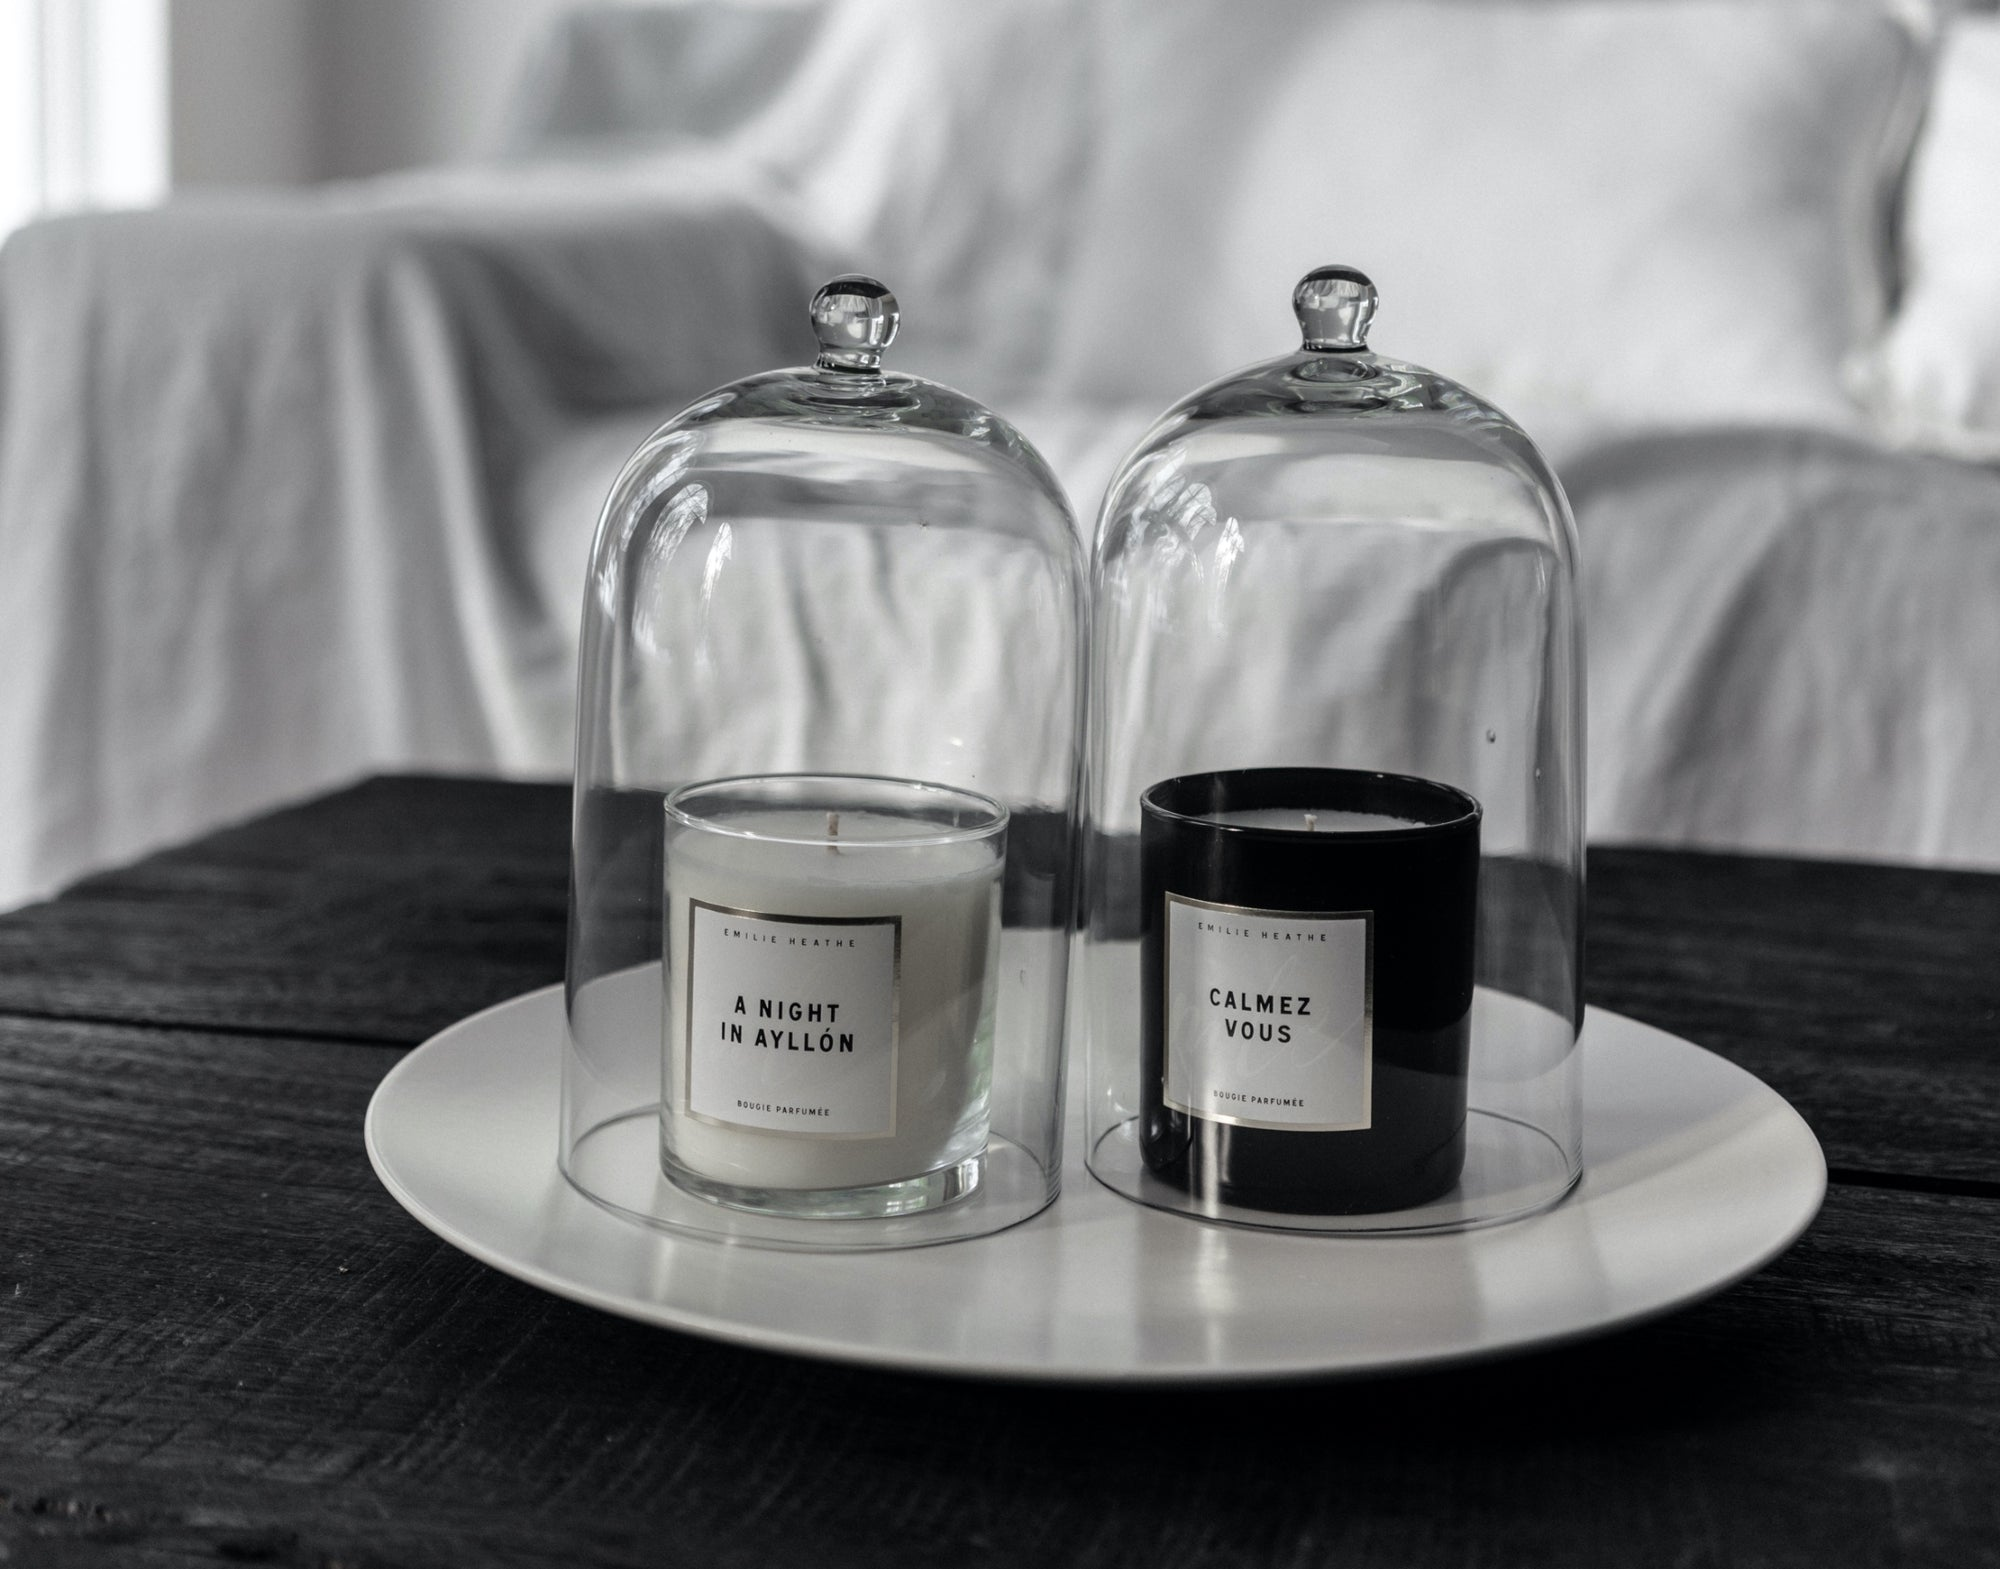 A Letter from The Founder: The Voulez-Vous Candle Launch